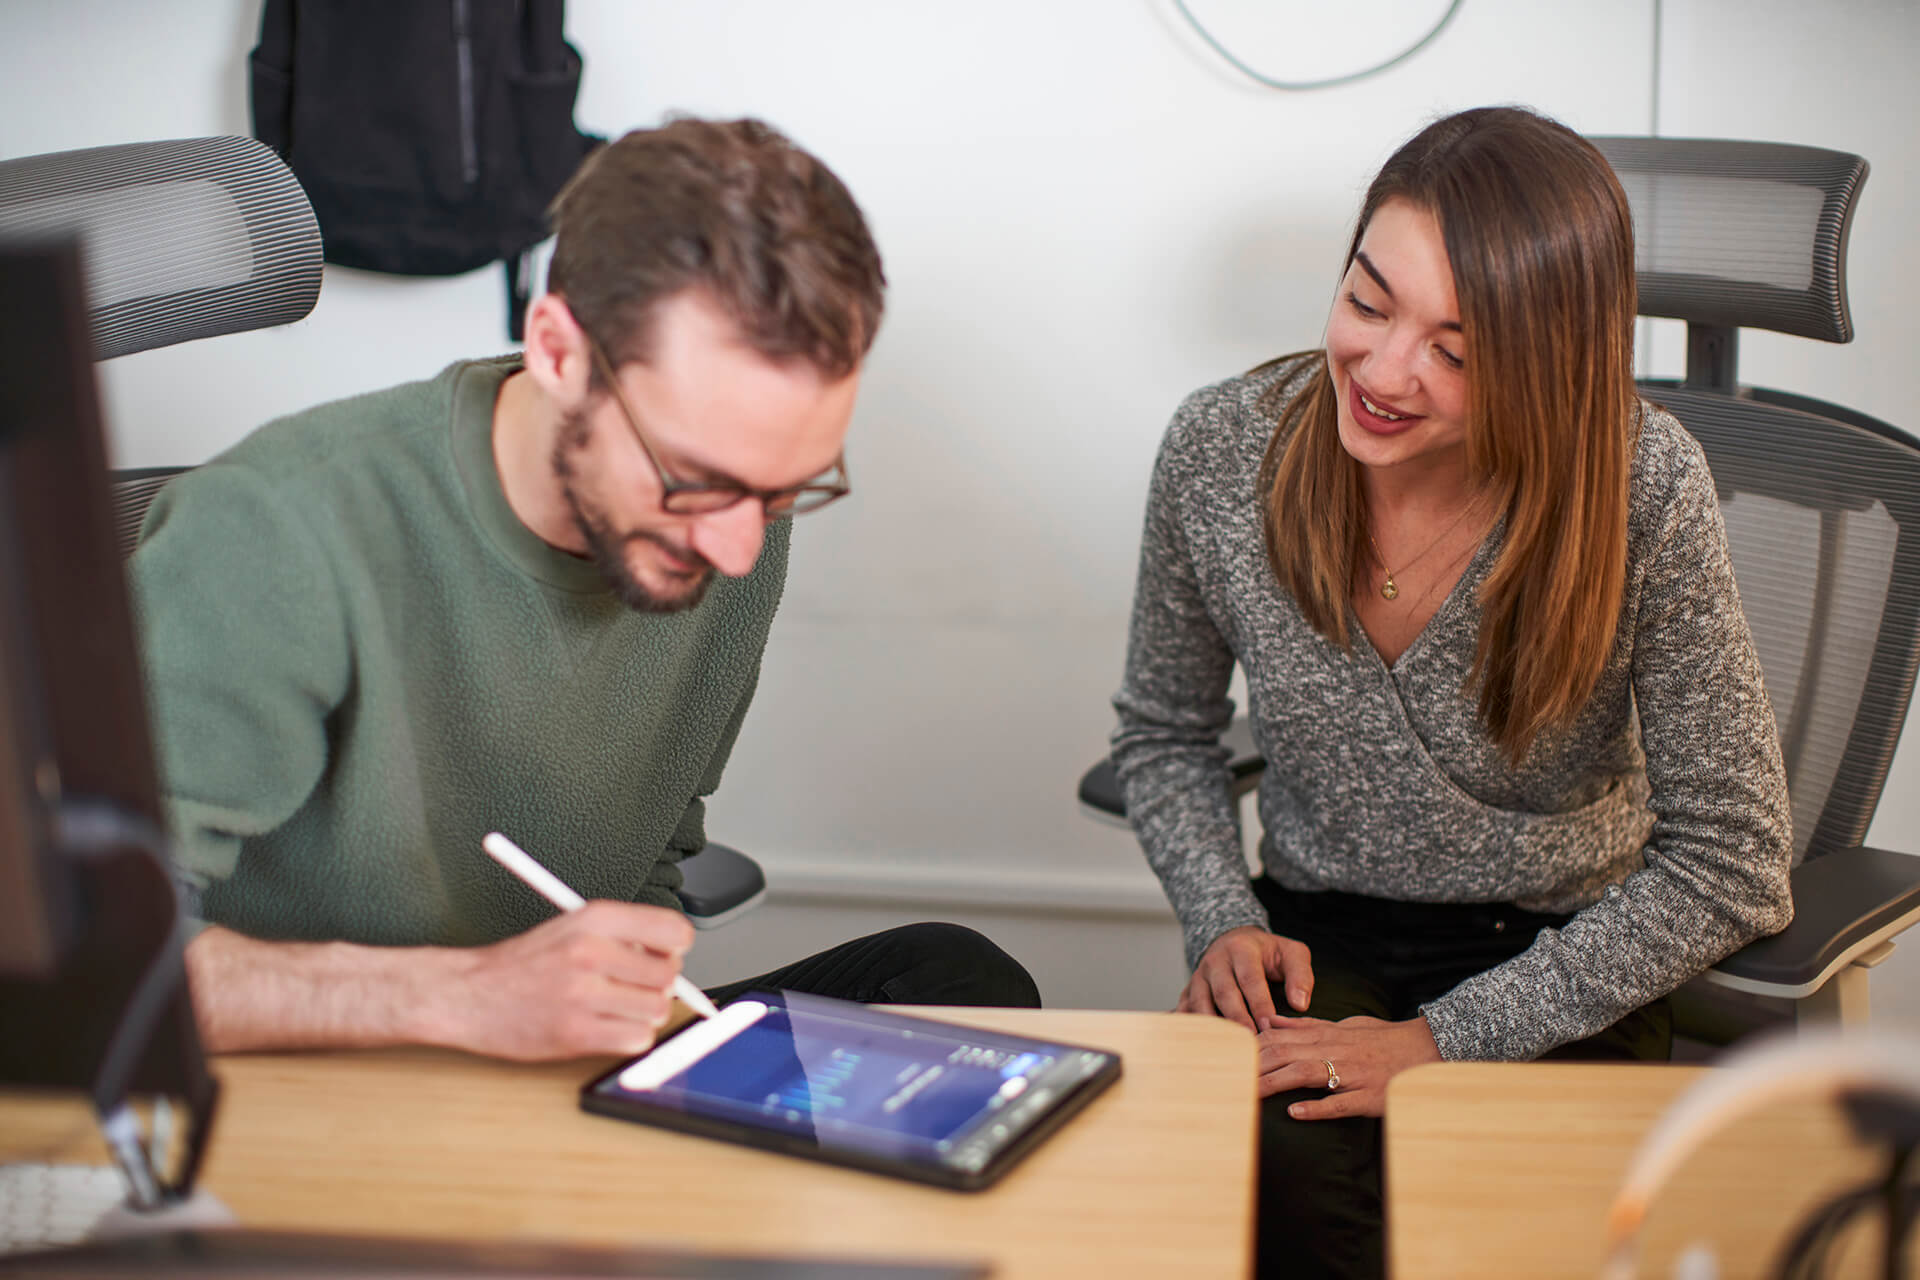 Hologram Senior Product Designer Sean Nelson and Sales Manager Allison Blade collaborate over an iPad in the Hologram office.